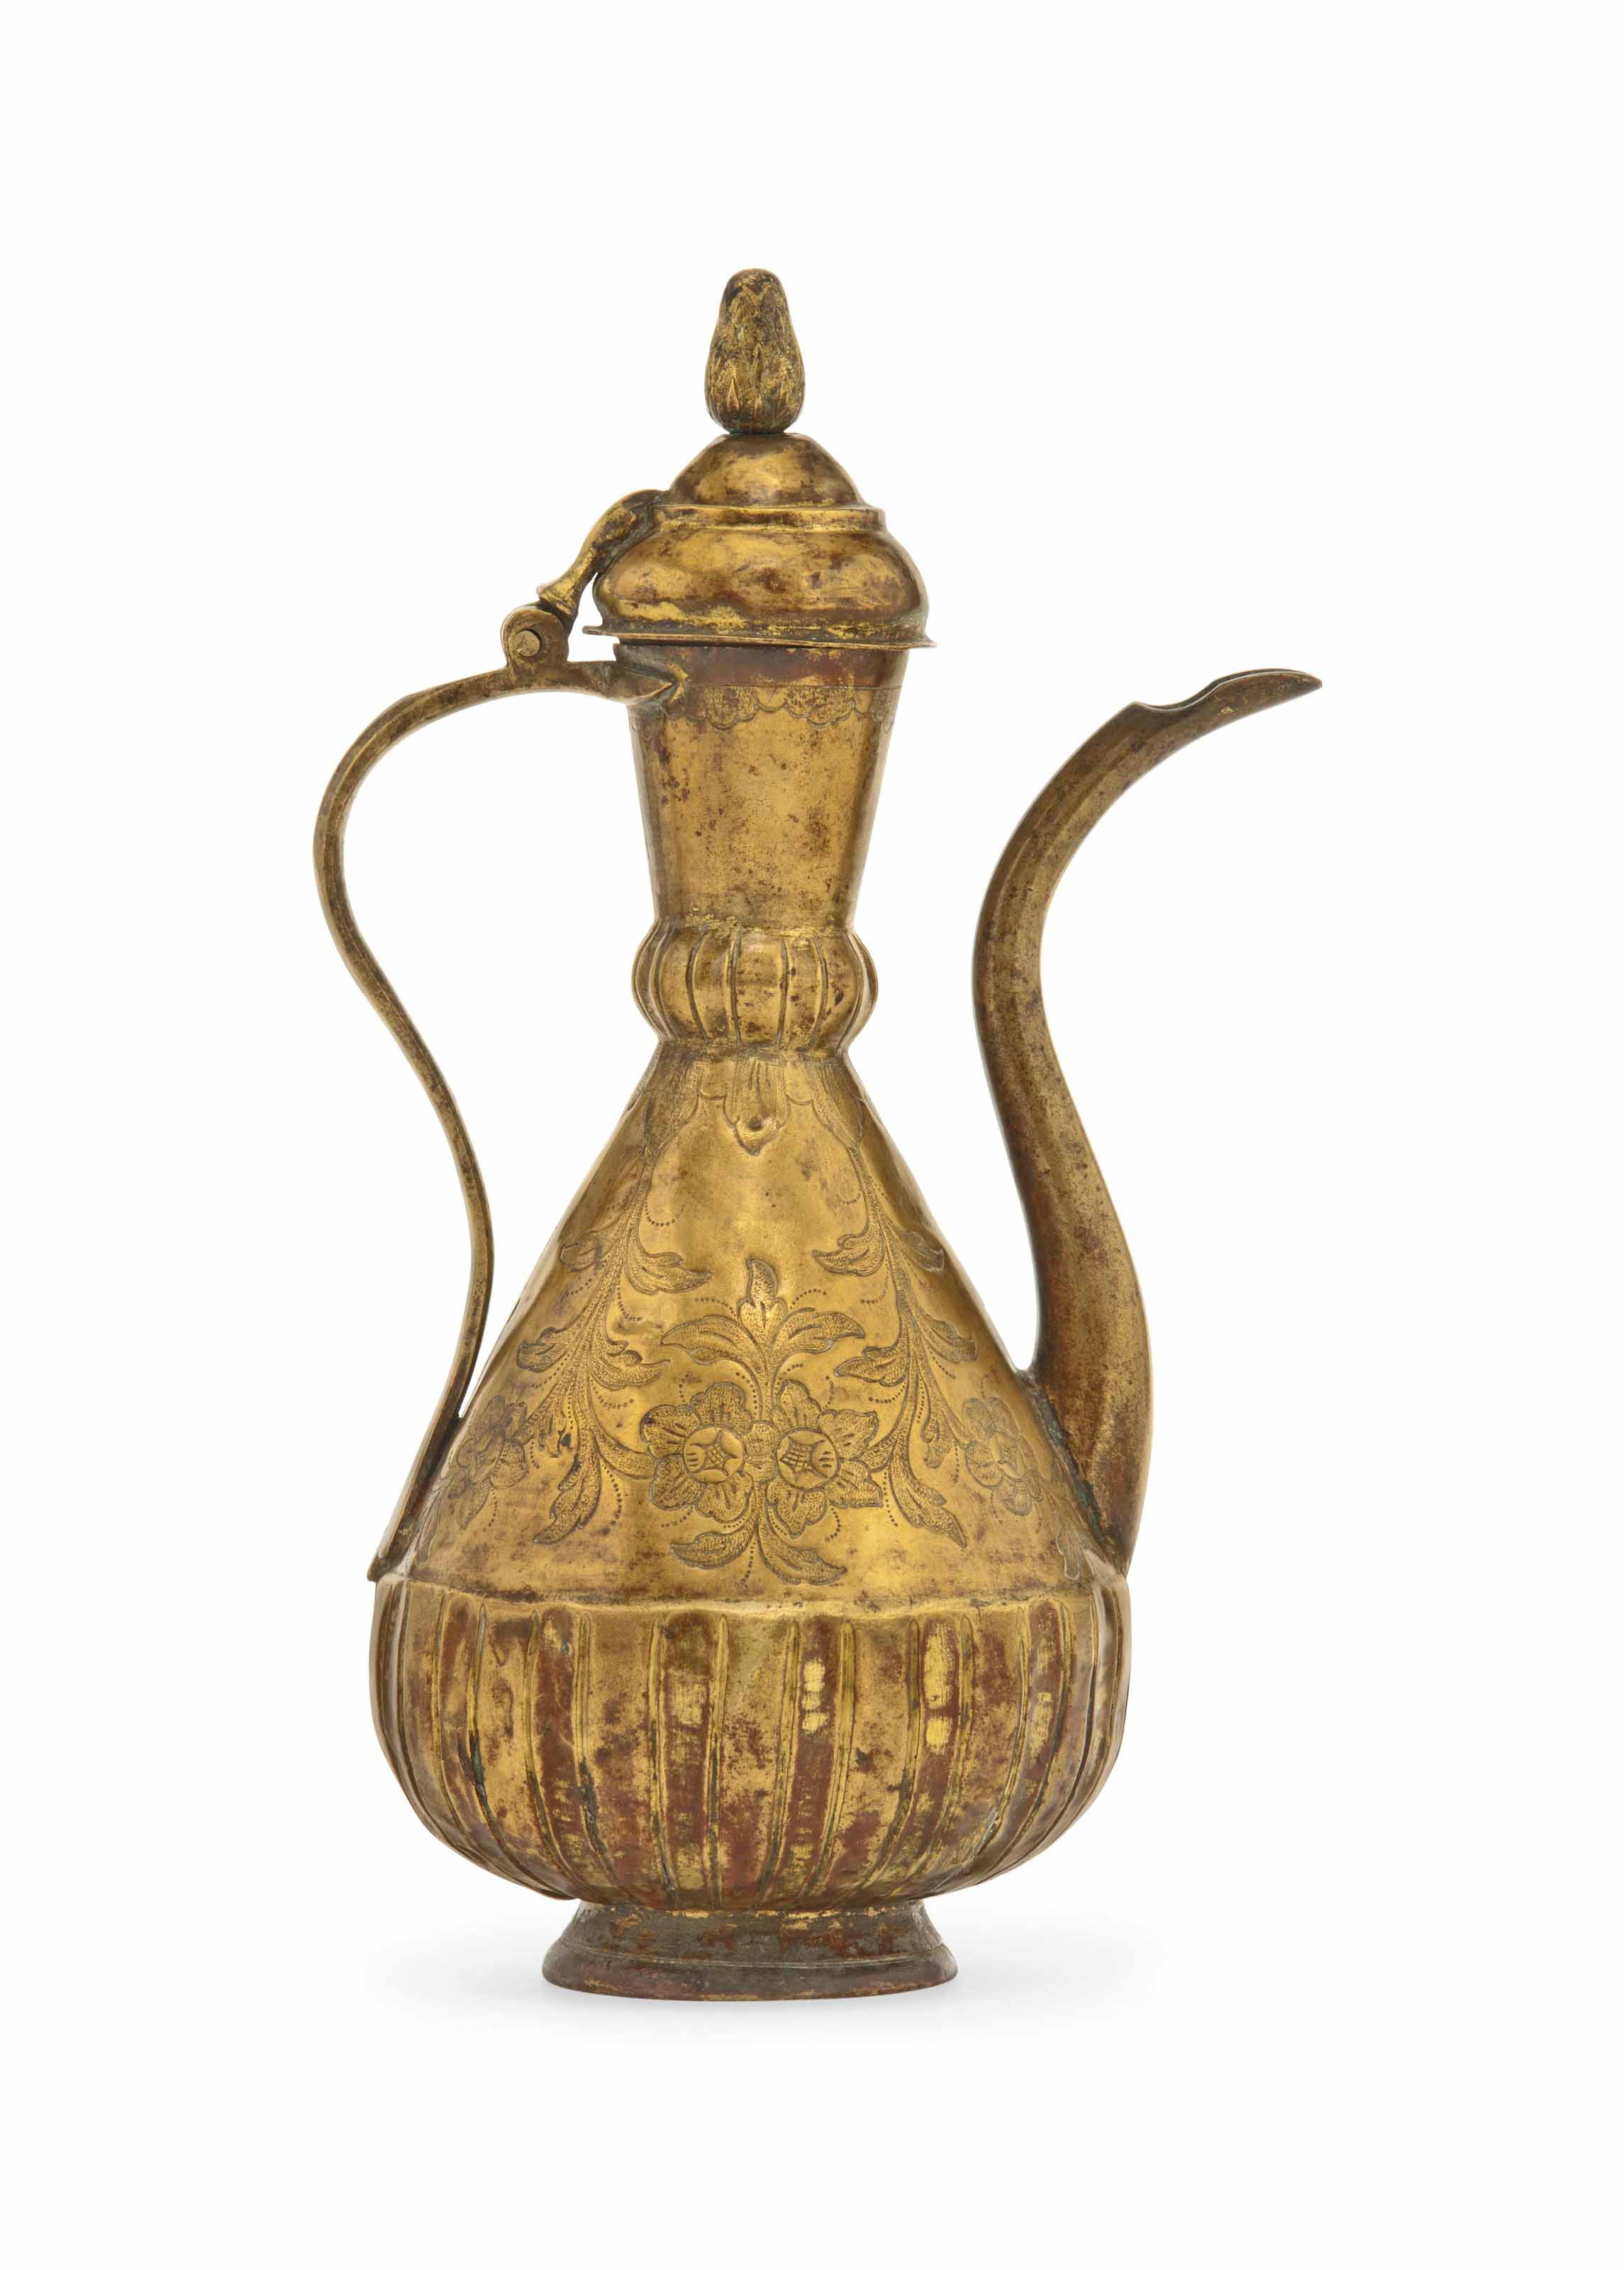 Tombak Metall A Gilt-copper (tombak) Ewer , Ottoman Turkey, Late 18th